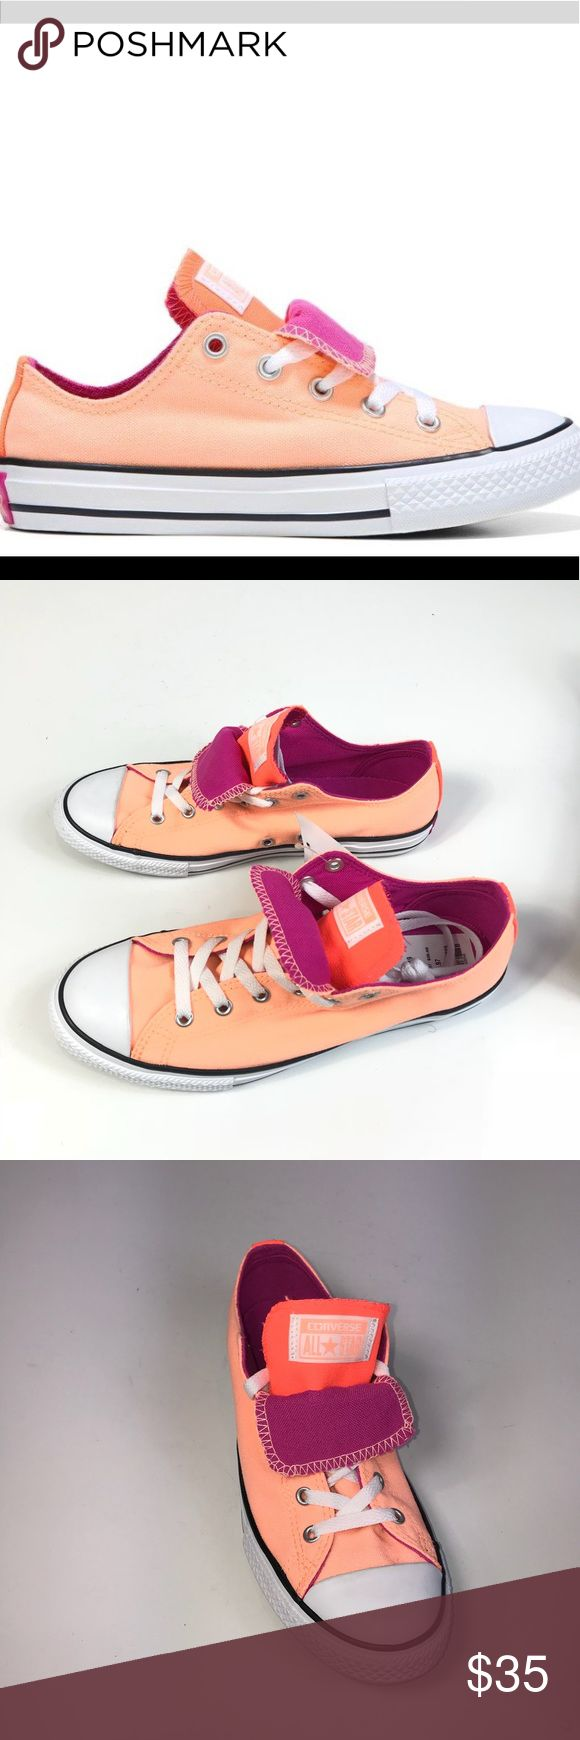 Converse Double Tongue CT Sneaker NWT Half Box Item has never been worn Sunset Glow/ Hyper Orange ❌🚭🐶🐱 ❌ no holes, tears or damage to the item Converse Shoes Athletic Shoes